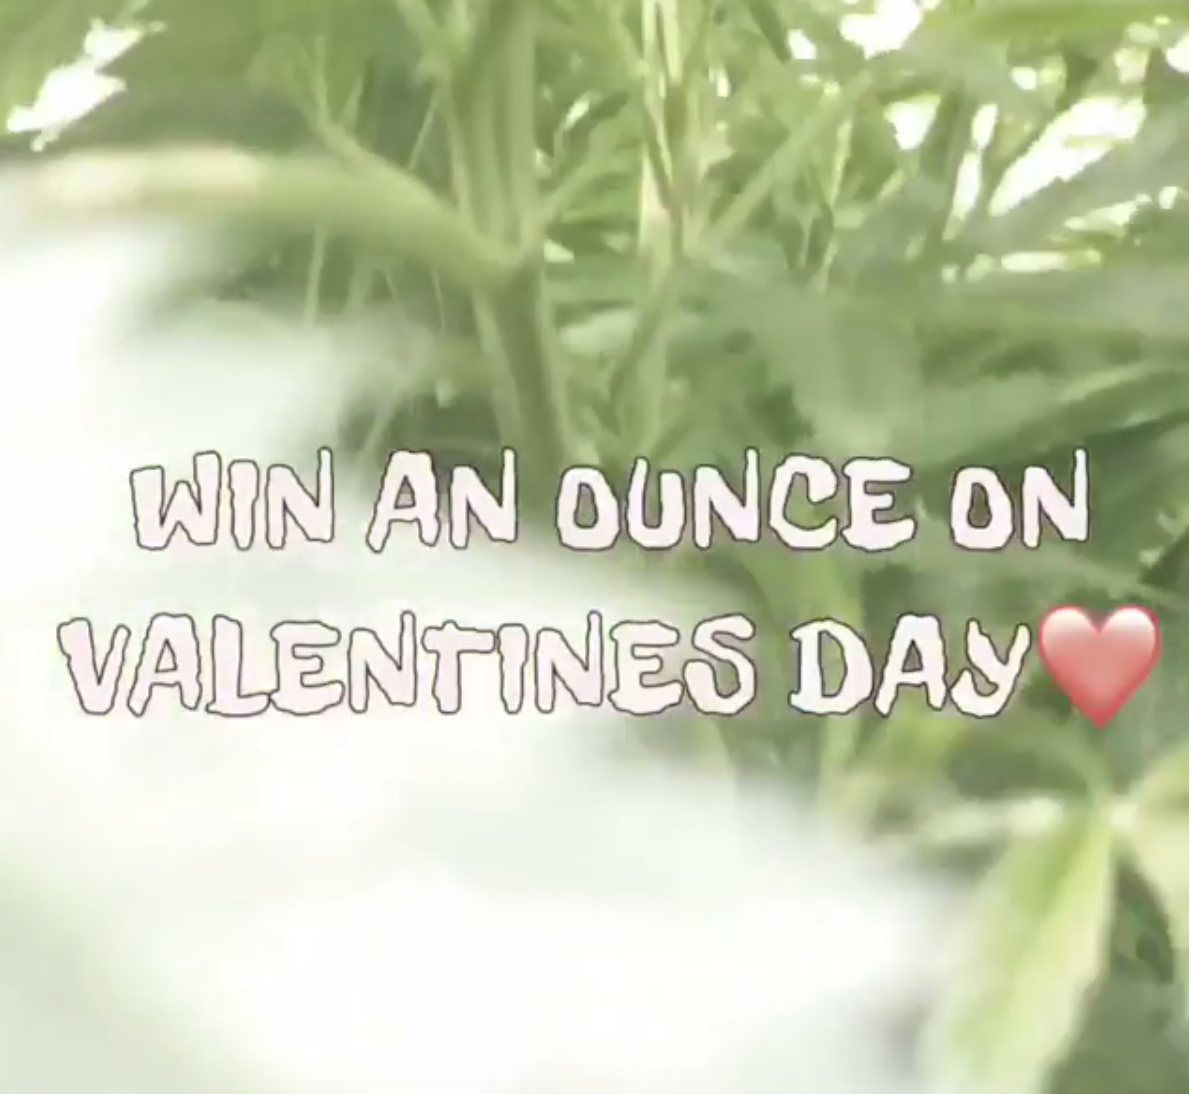 win-an-ounce-marijuana-tucson